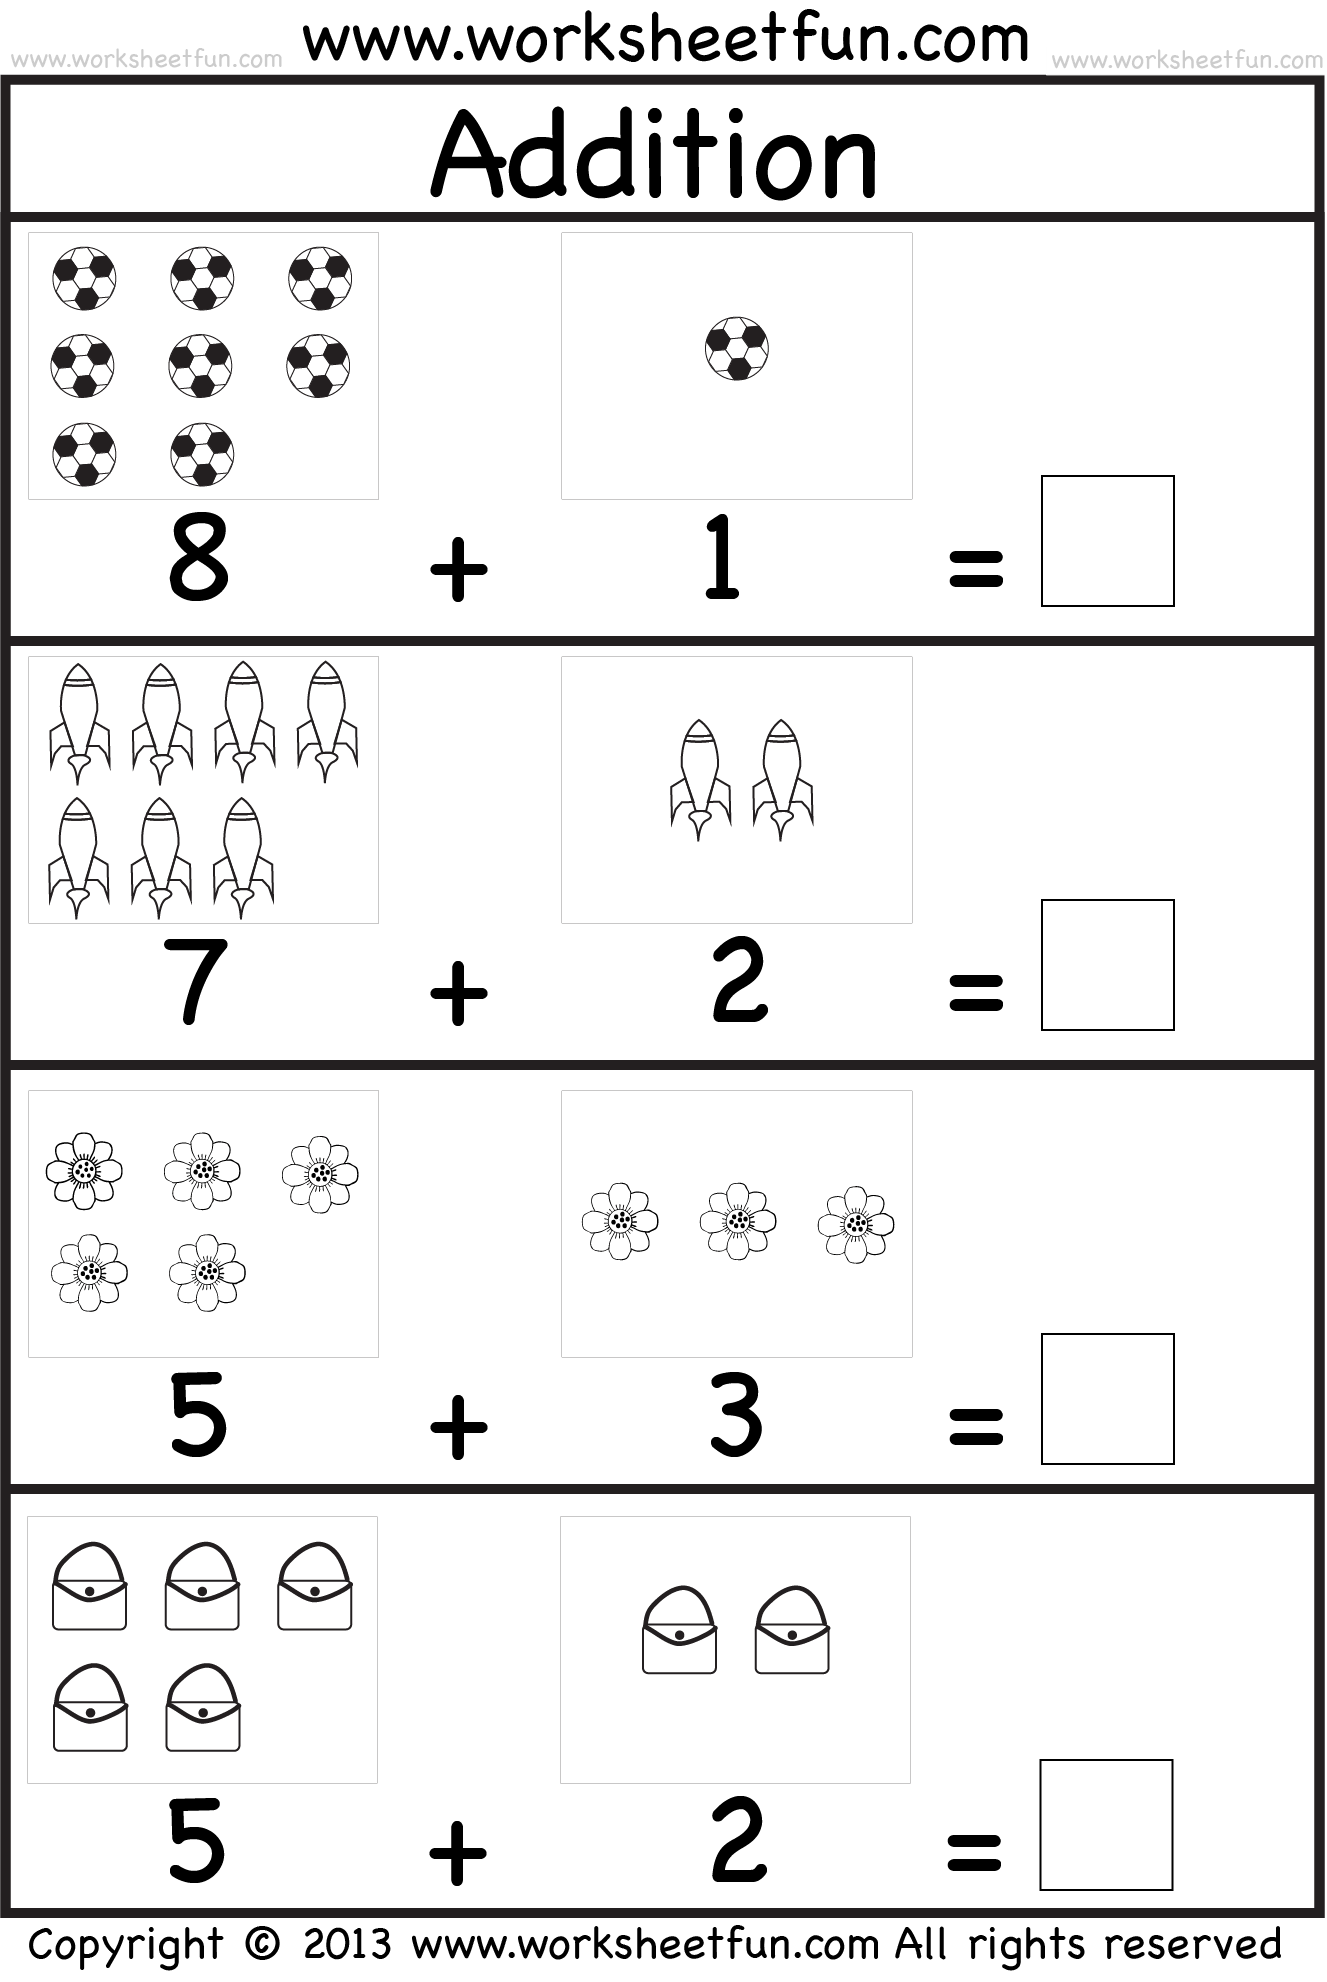 Picture Addition Beginner Addition Kindergarten